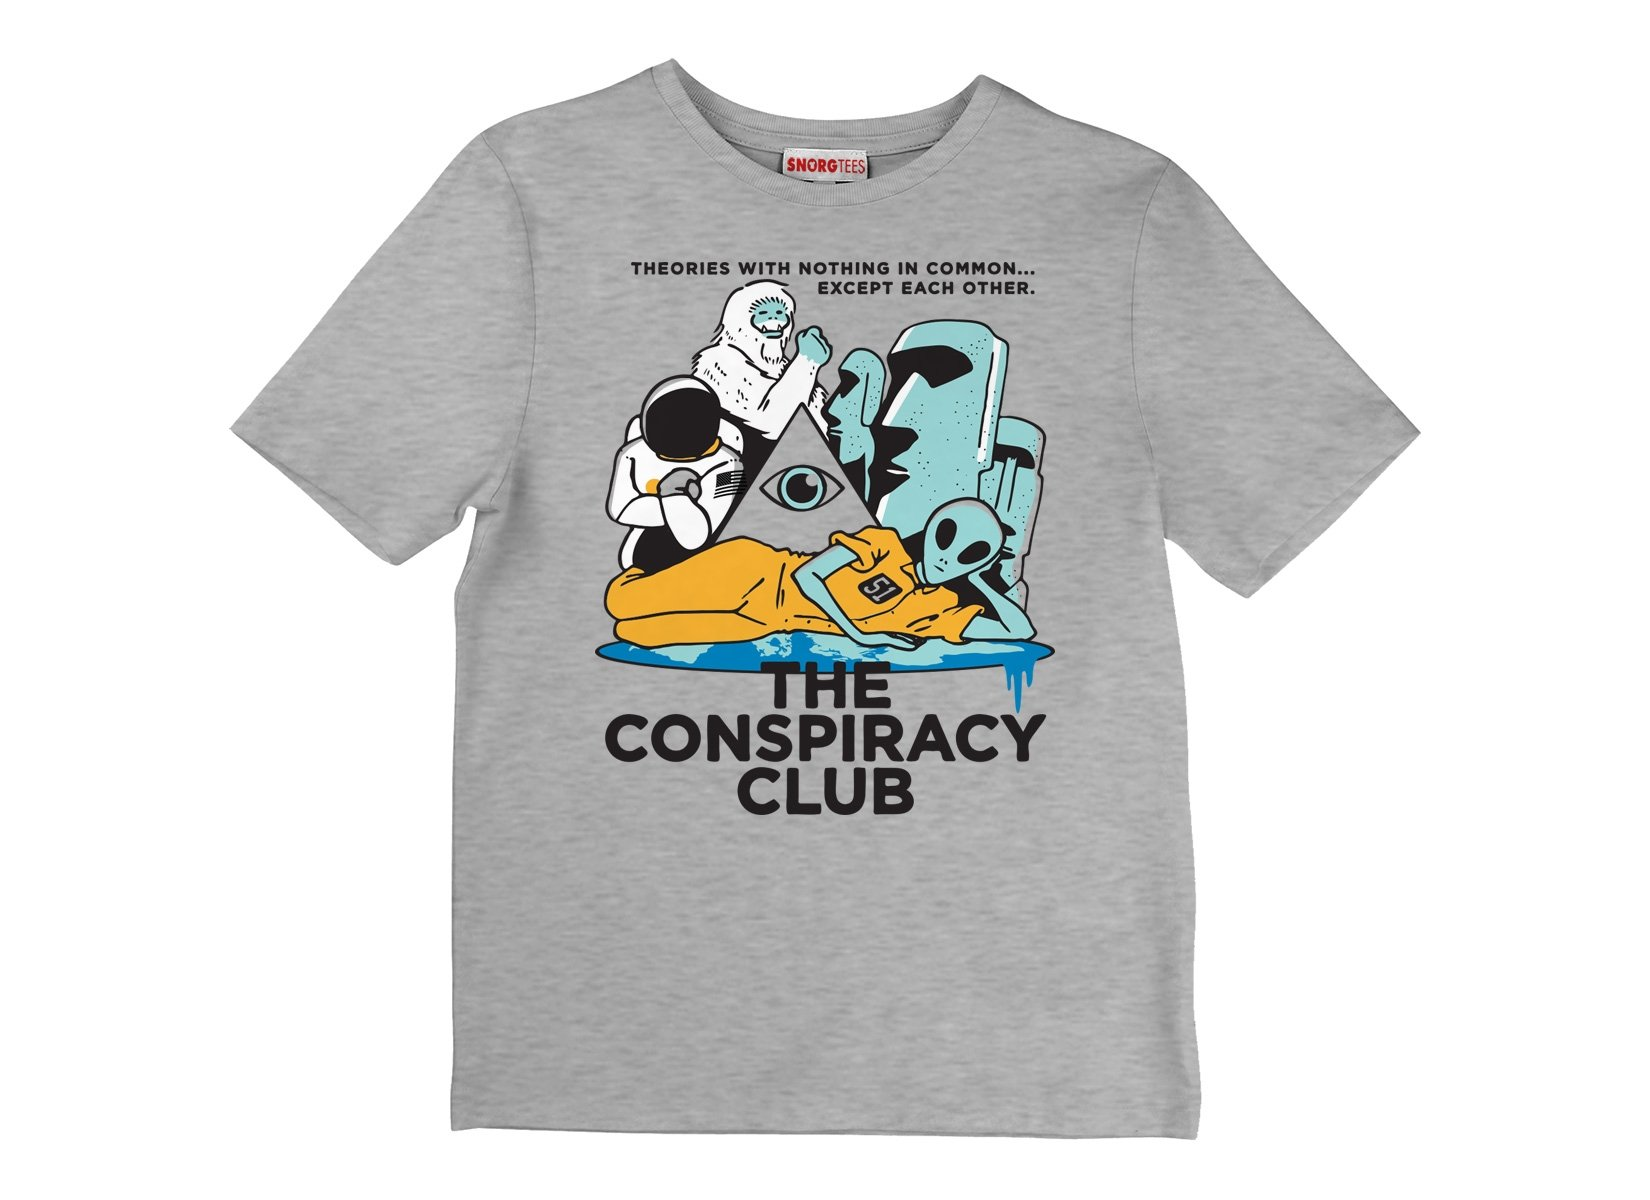 The Conspiracy Club on Kids T-Shirt